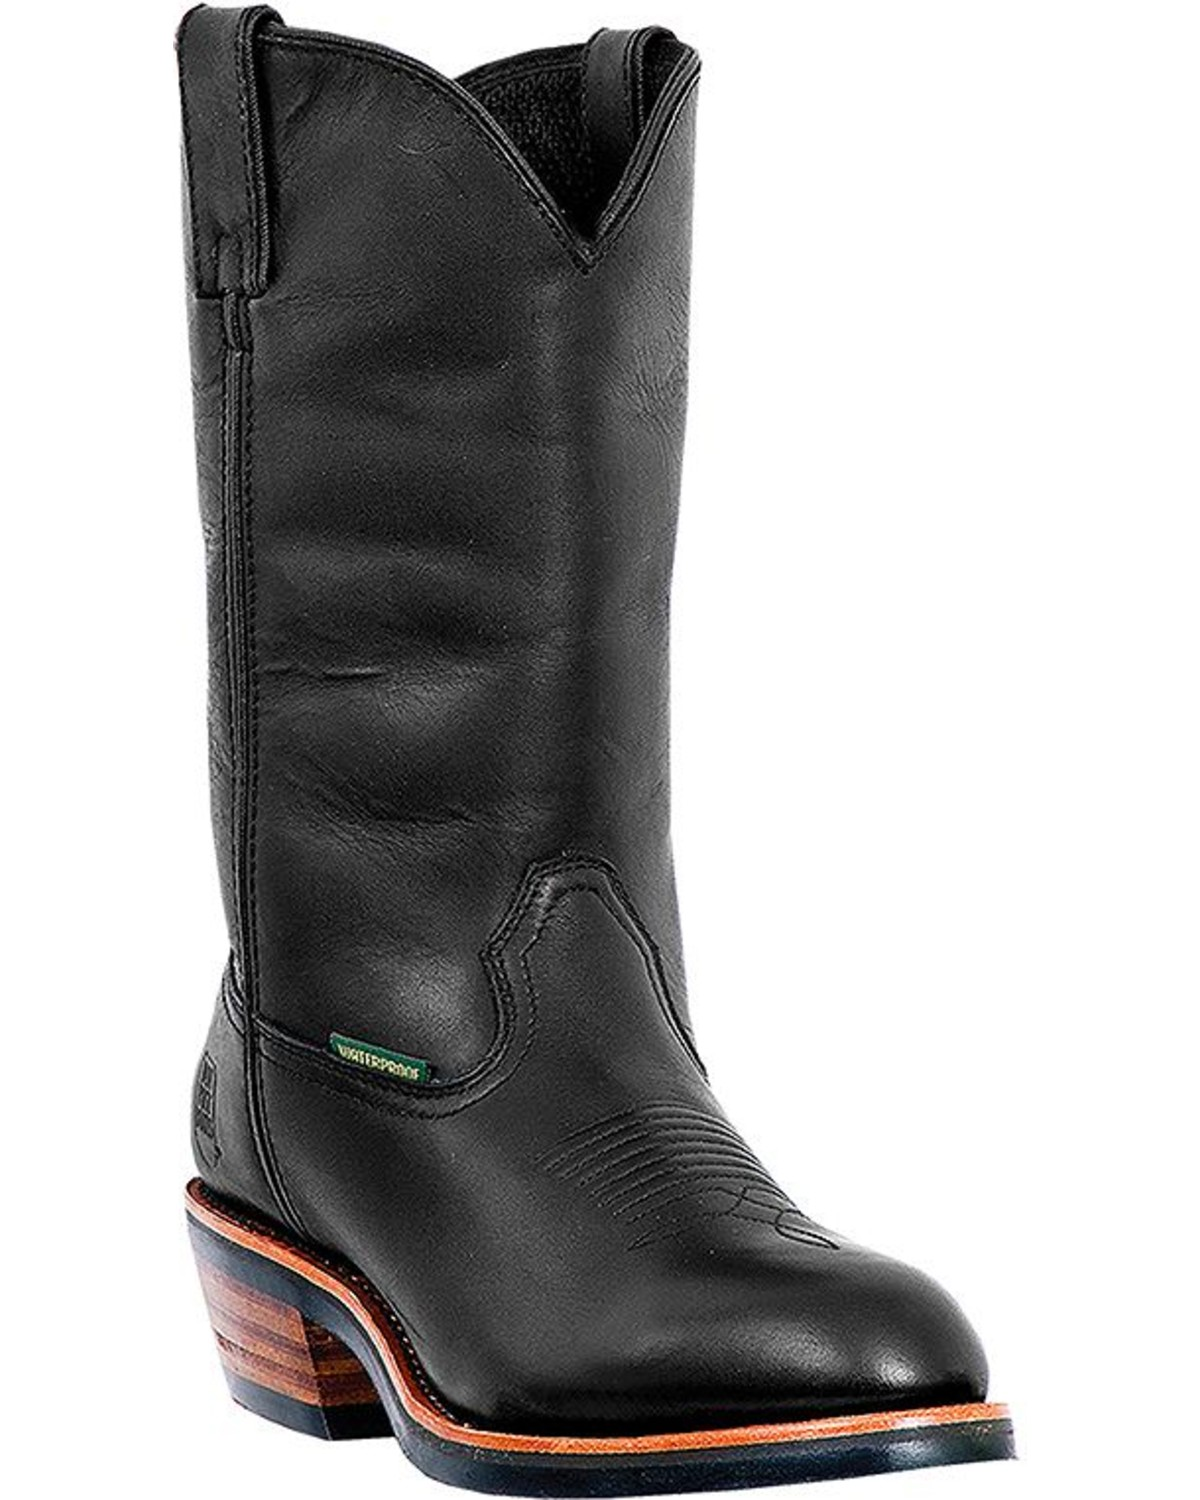 63b0953bc Zoomed Image Dan Post Men's Albuquerque Waterproof Western Work Boots,  Black, hi-res